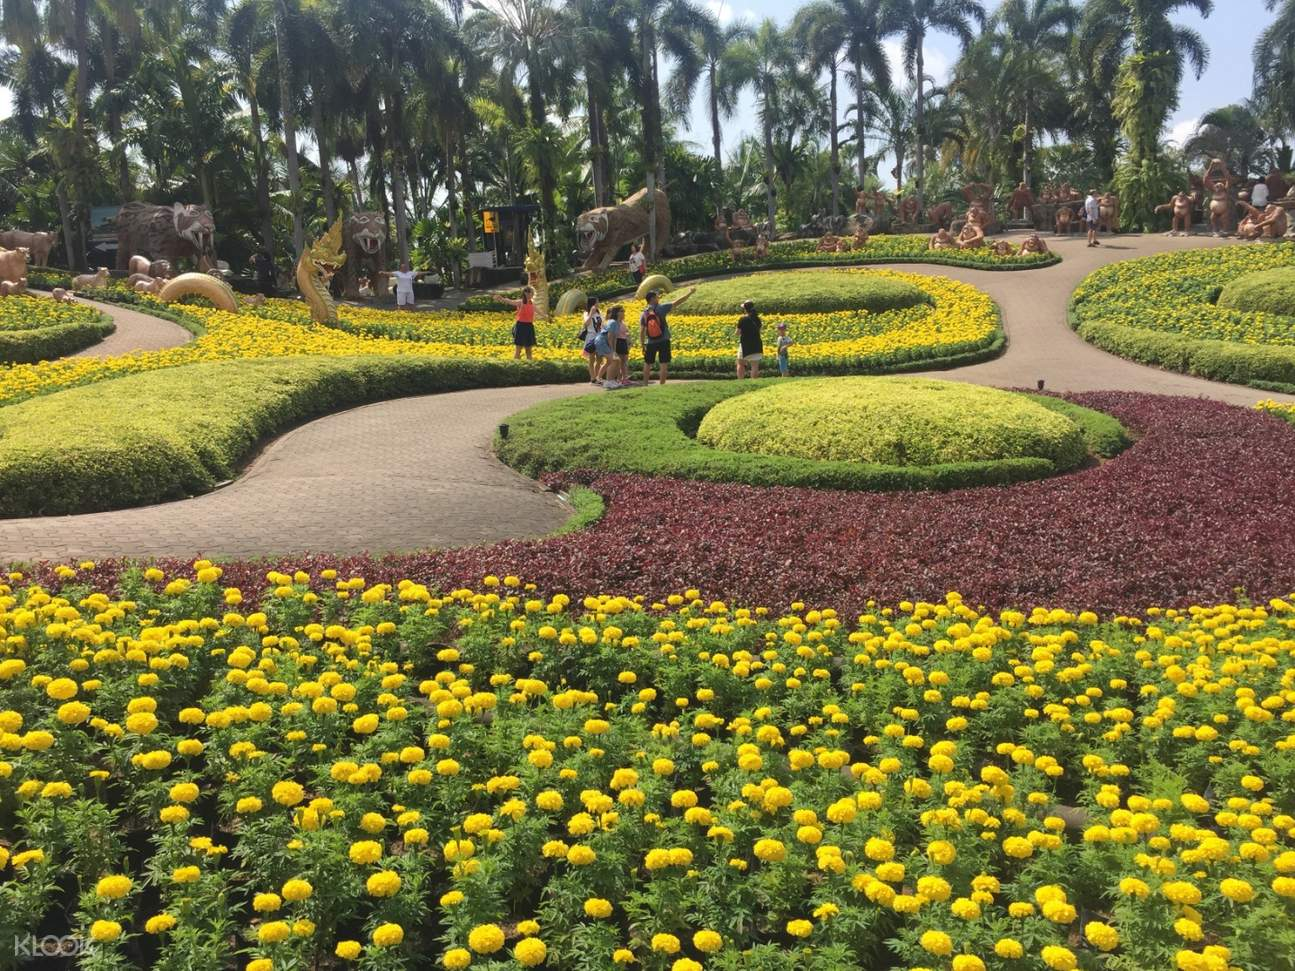 Nong Nooch Tropical Garden and Koh Larn Day Tour from Pattaya